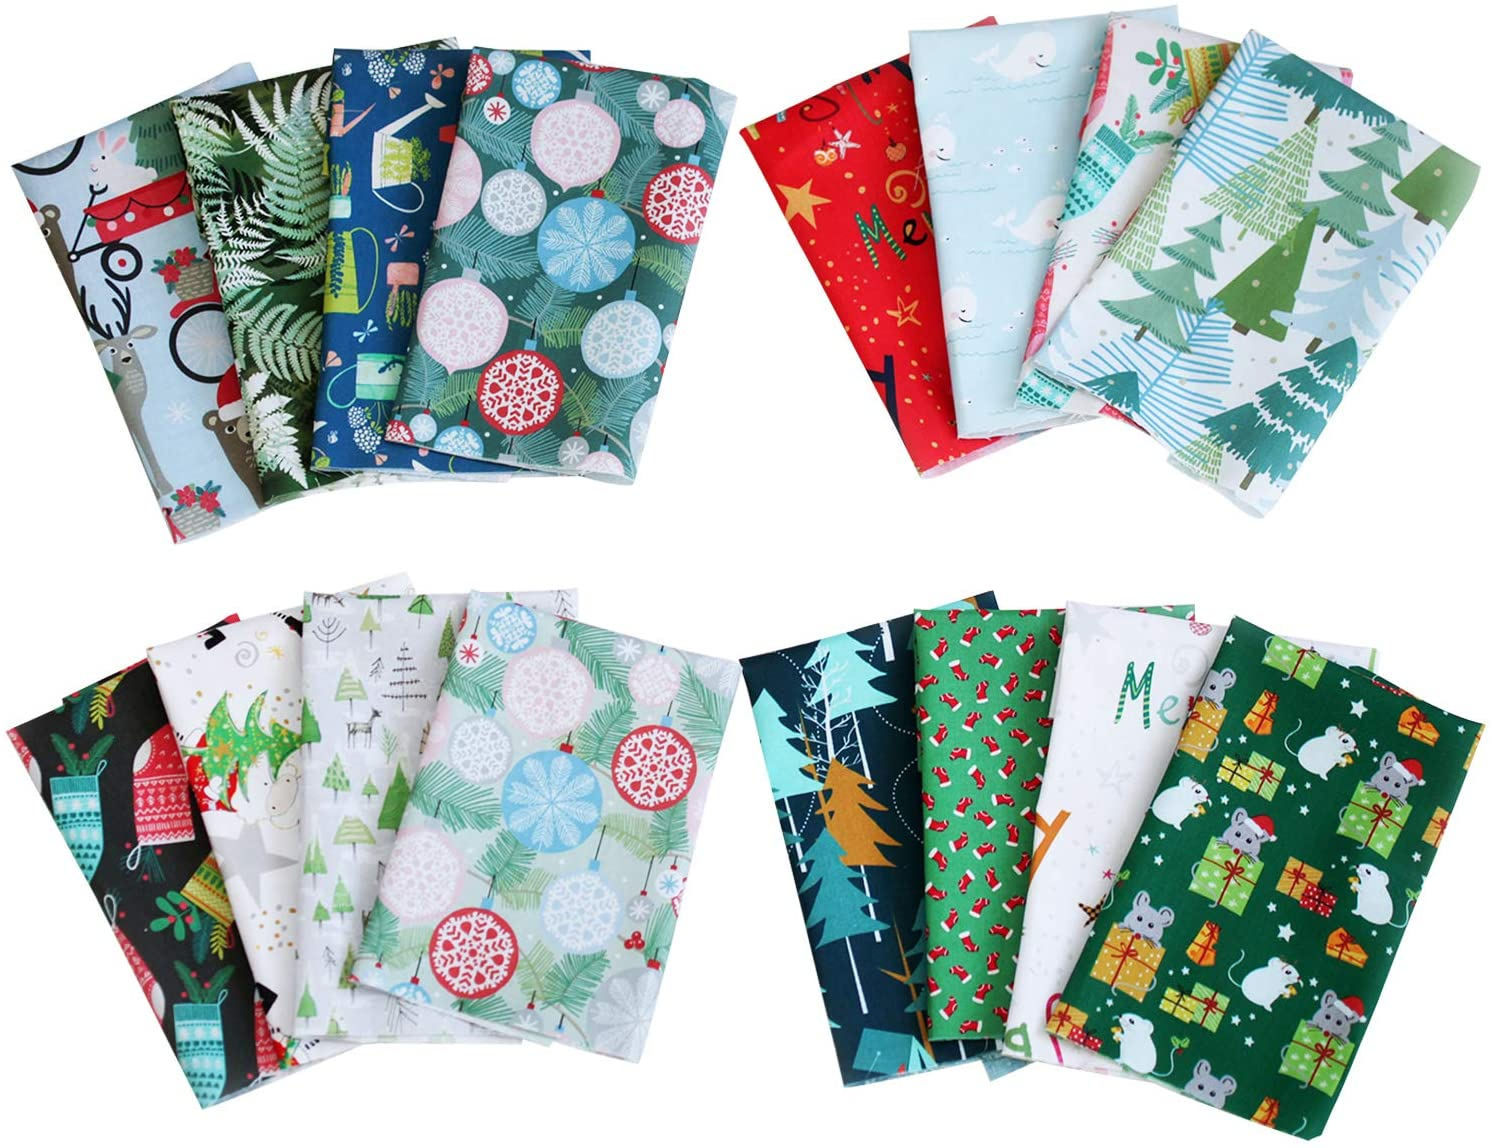 16 Pcs Cotton Craft Fabric Bundle Quilting Fabric with Different Patterns Fabric Patchwork Craft Cotton Quilting Fabric for Sewing Quilting Patchwork Craft Scrapbooking